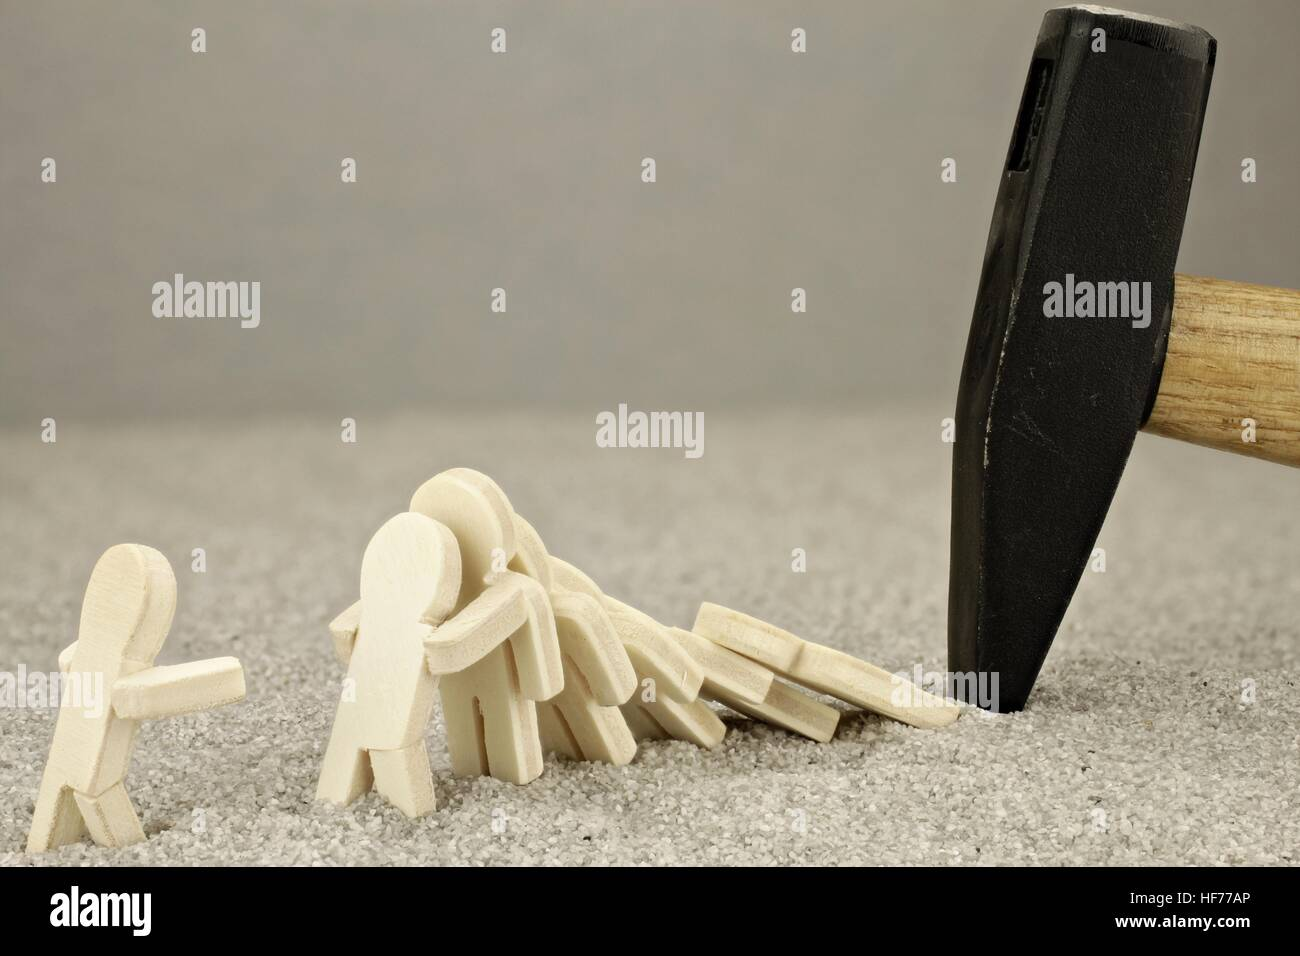 Terror scene with wooden men and hammer Stock Photo